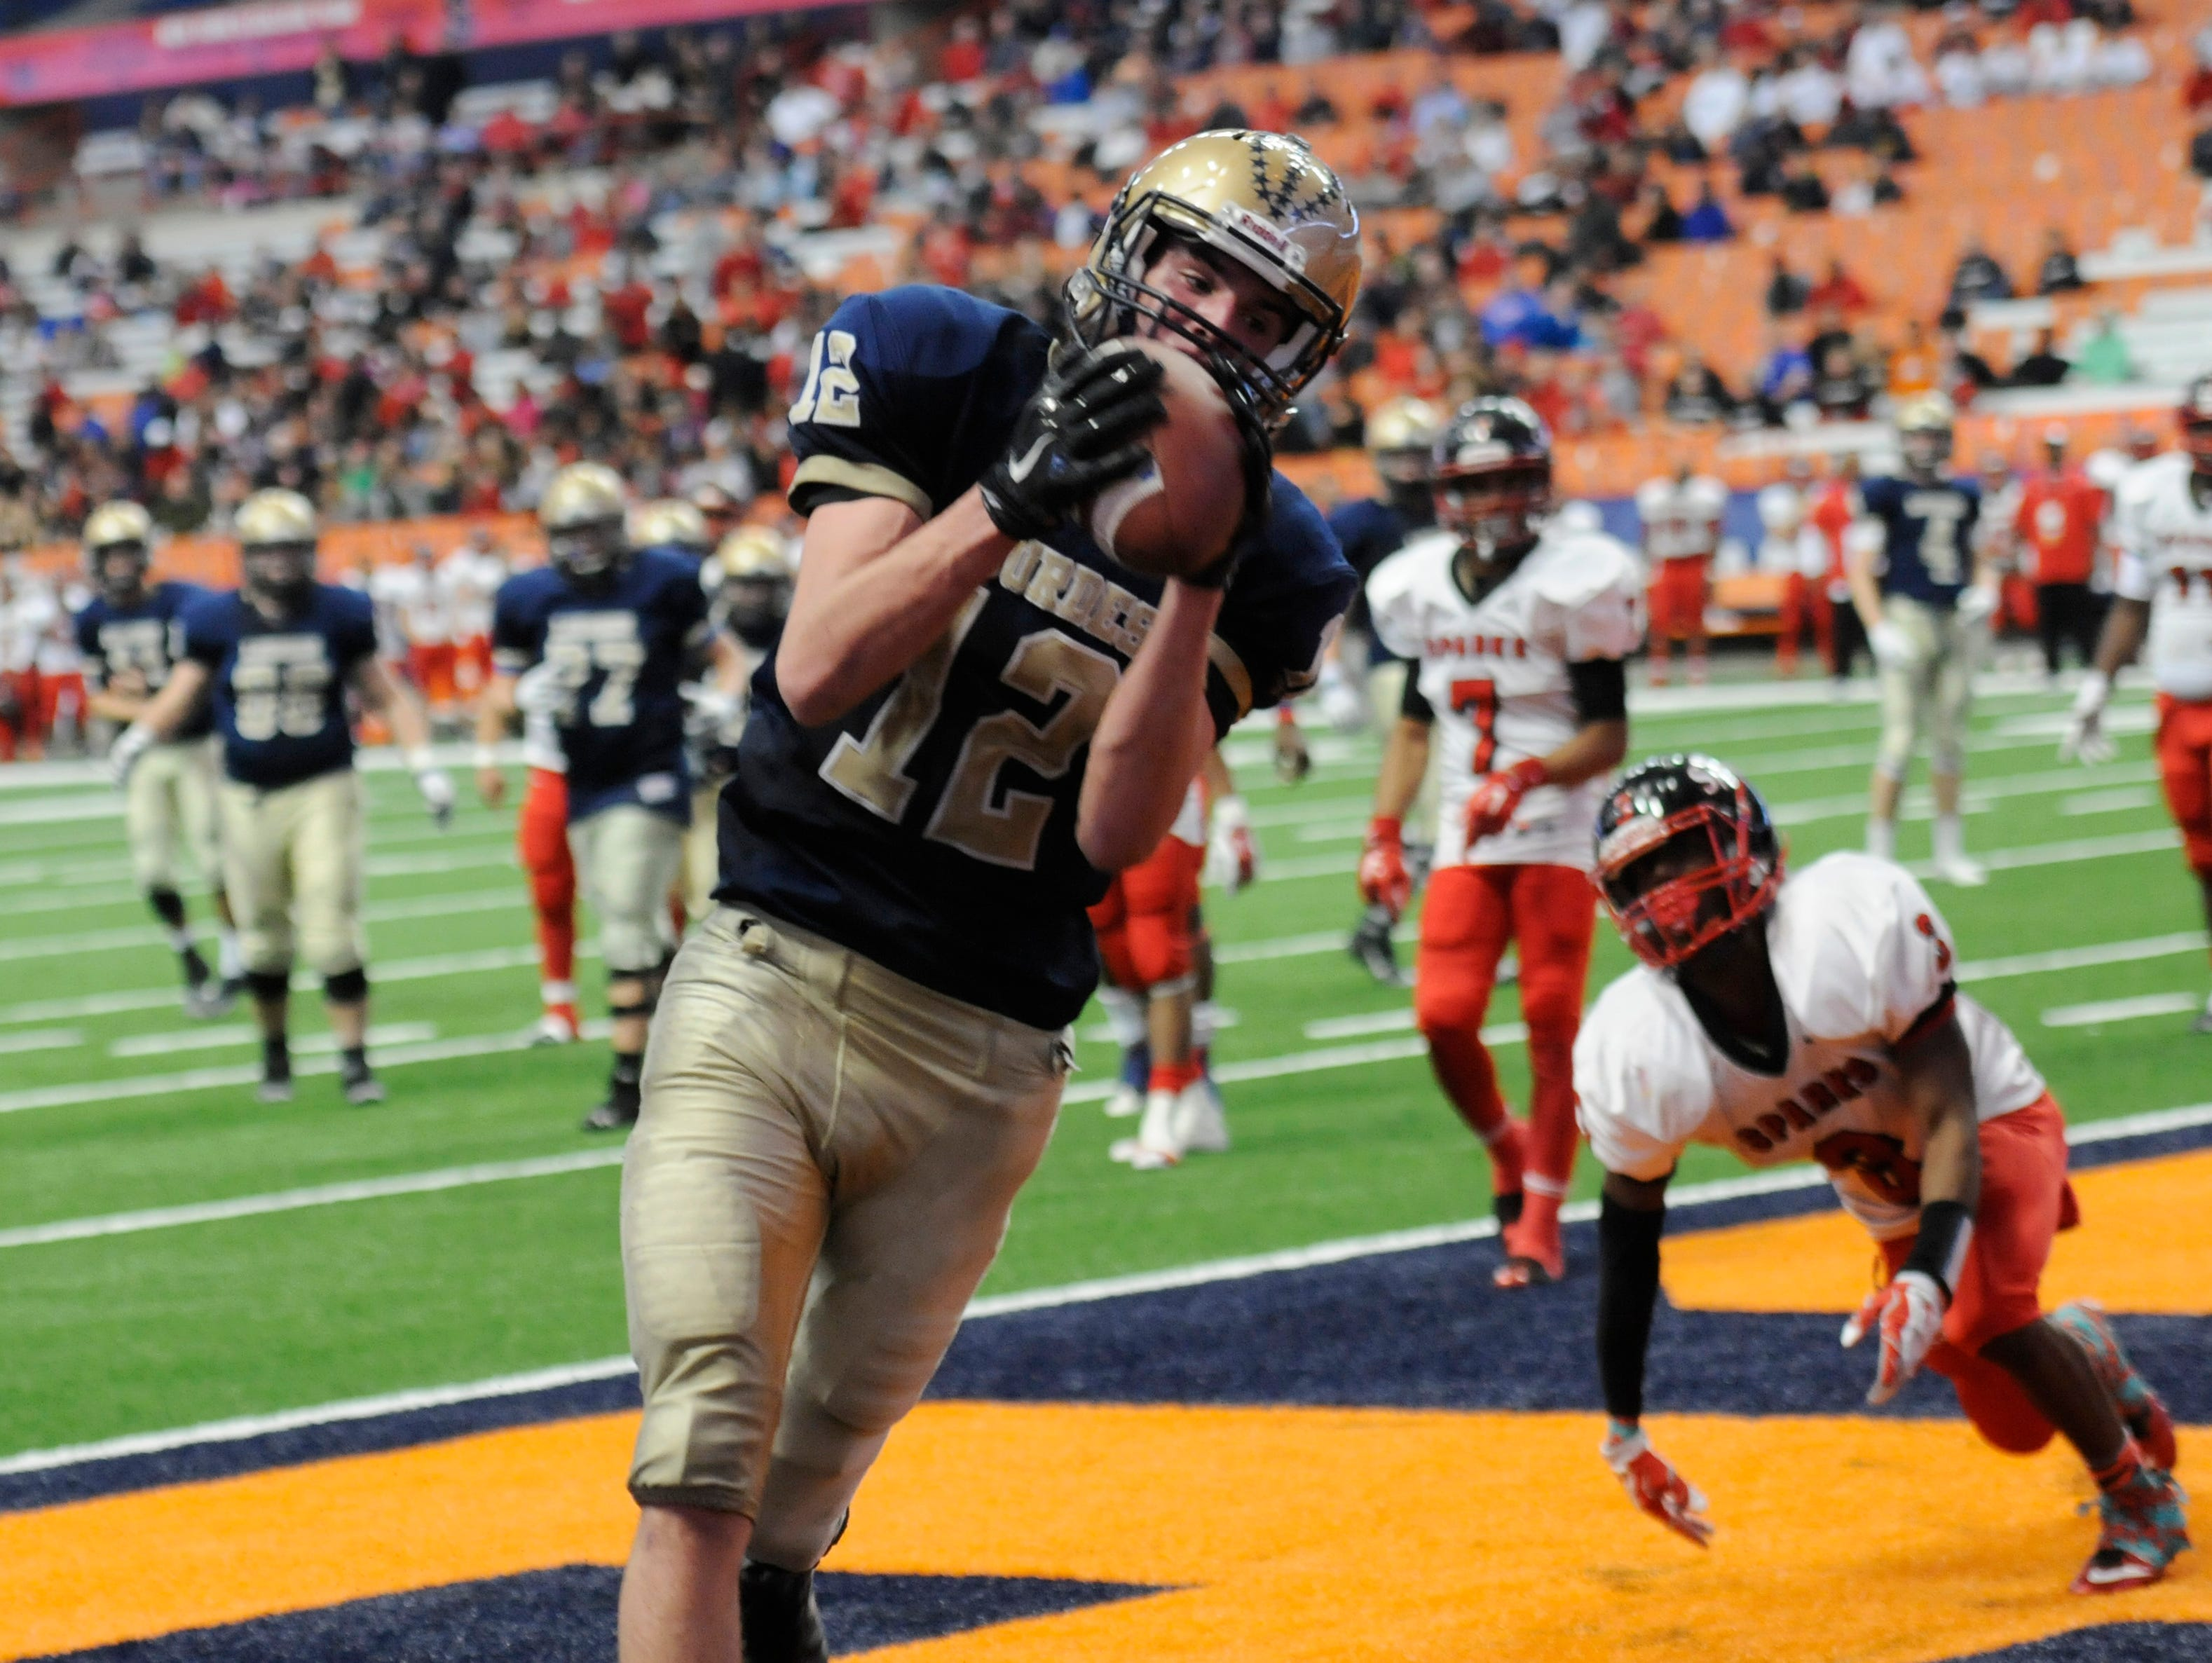 Lourdes' Luke Timm catches the ball for a touchdown during the New York State Championship final versus South Park in Syracuse on Friday.